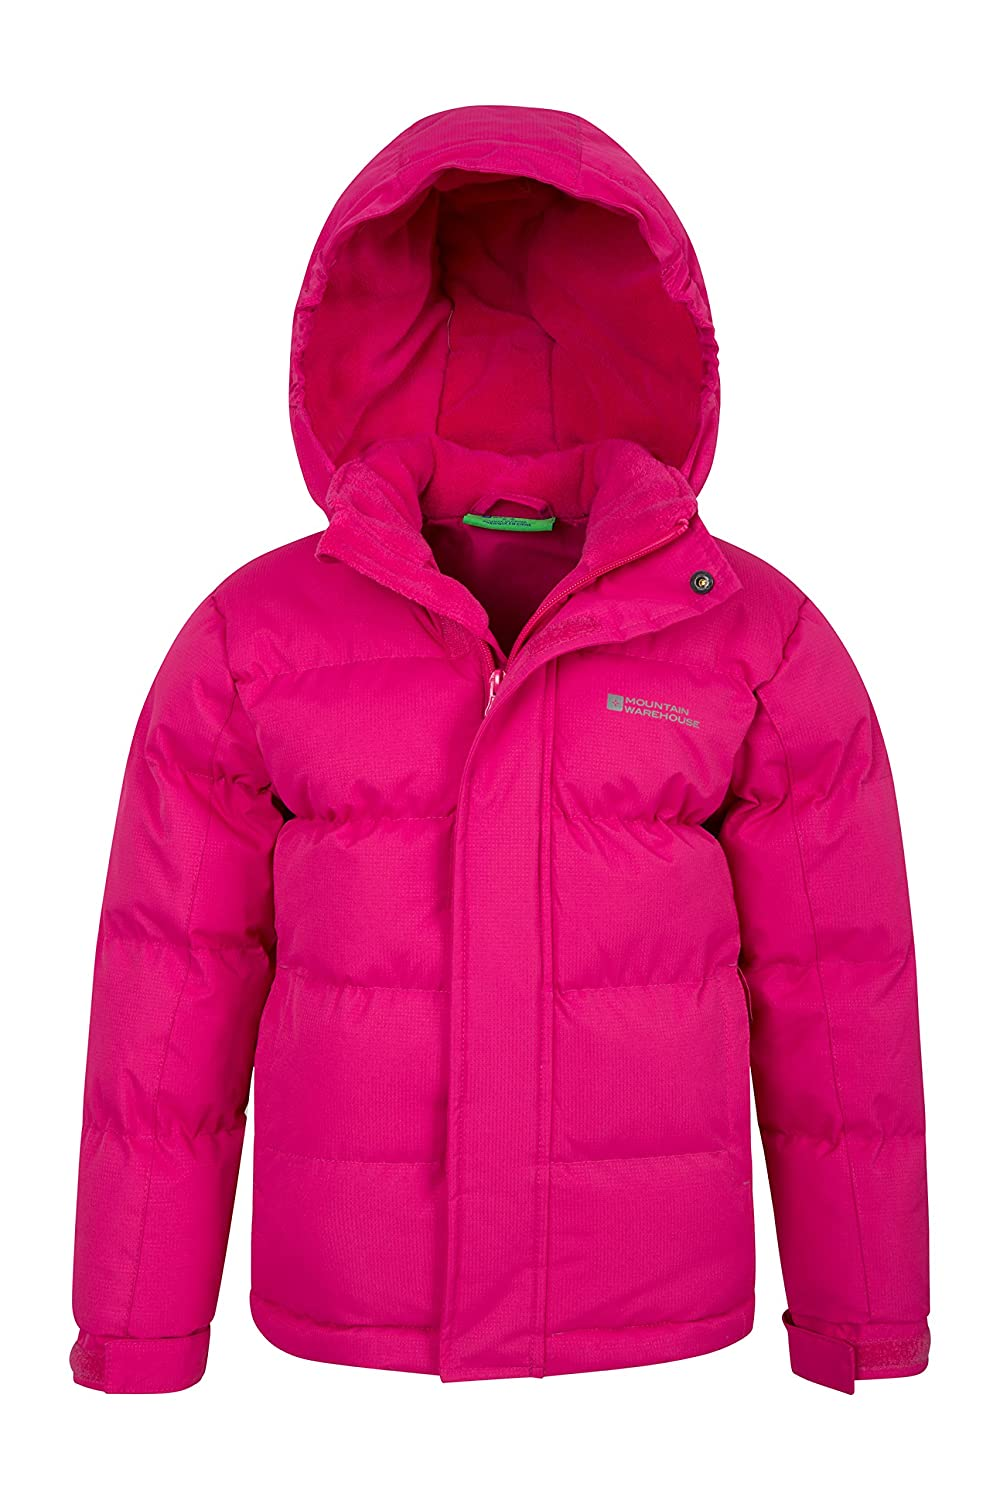 Ripstop Water Resistant Ideal Childrens Winter Coat Pockets Mountain Warehouse Snow Youth Padded Kids Jacket Adjustable Cuffs /& Hood Fleece Lined Collar Hood